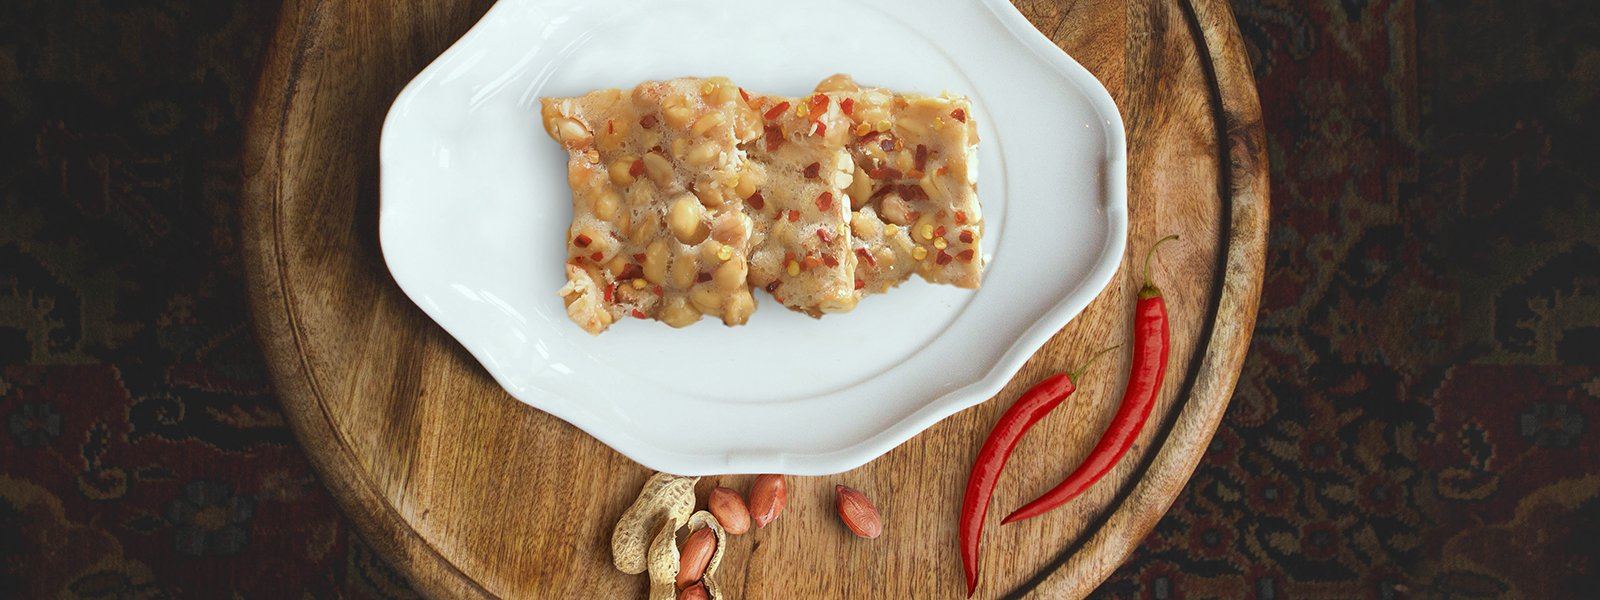 Chilli Peanut Brittle